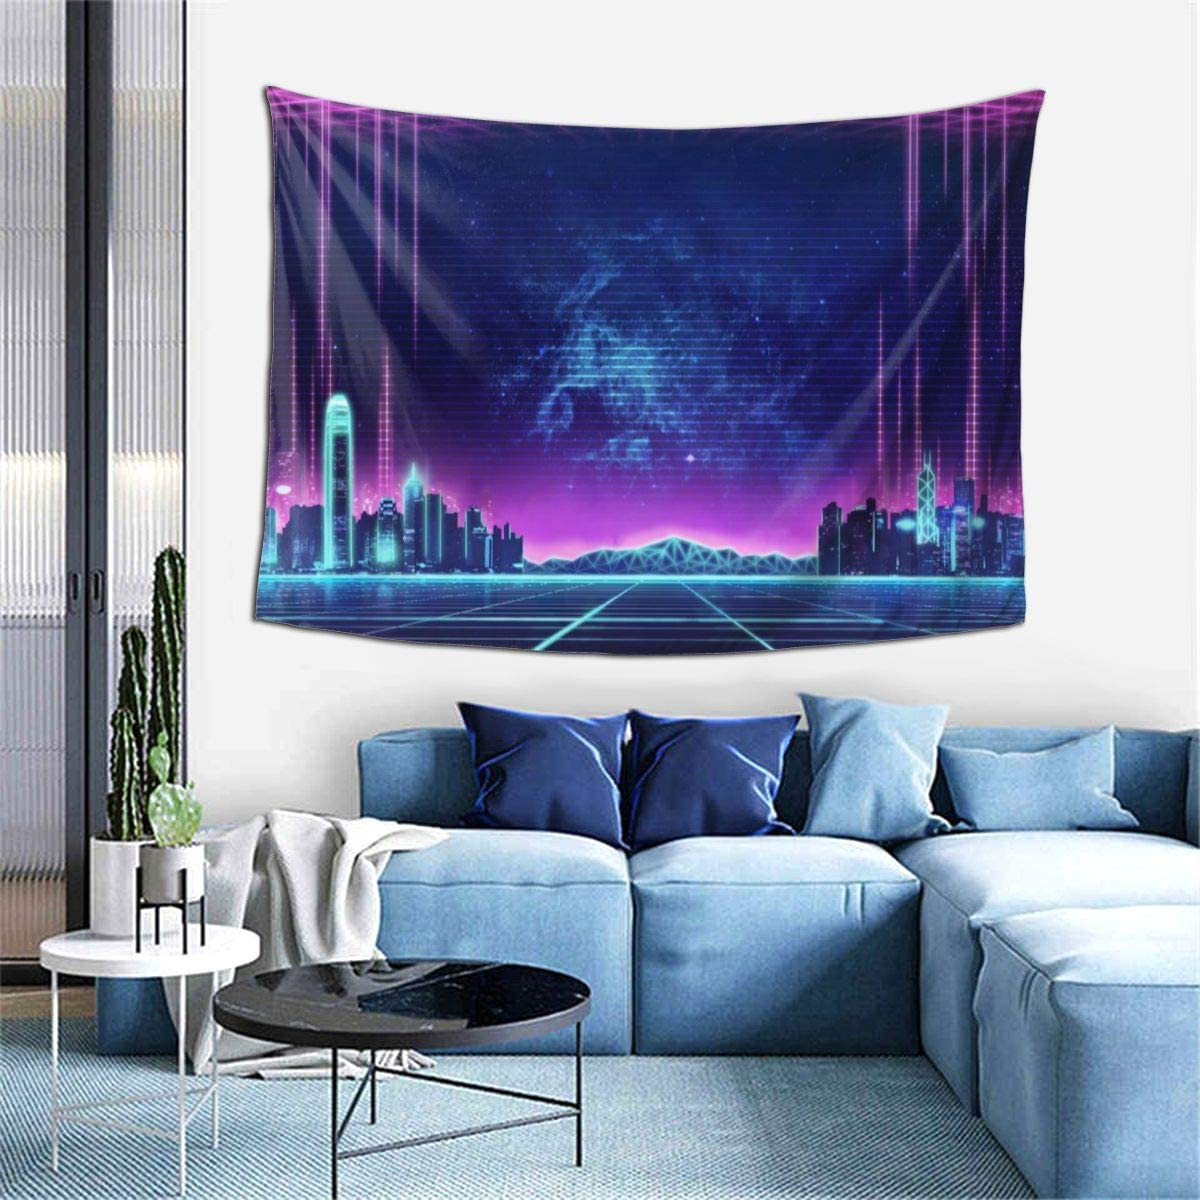 Amazon Com Touhou Abstract City Buildings Wall Art Hanging Decor Tapestry 60x40 Inch Home Kitchen